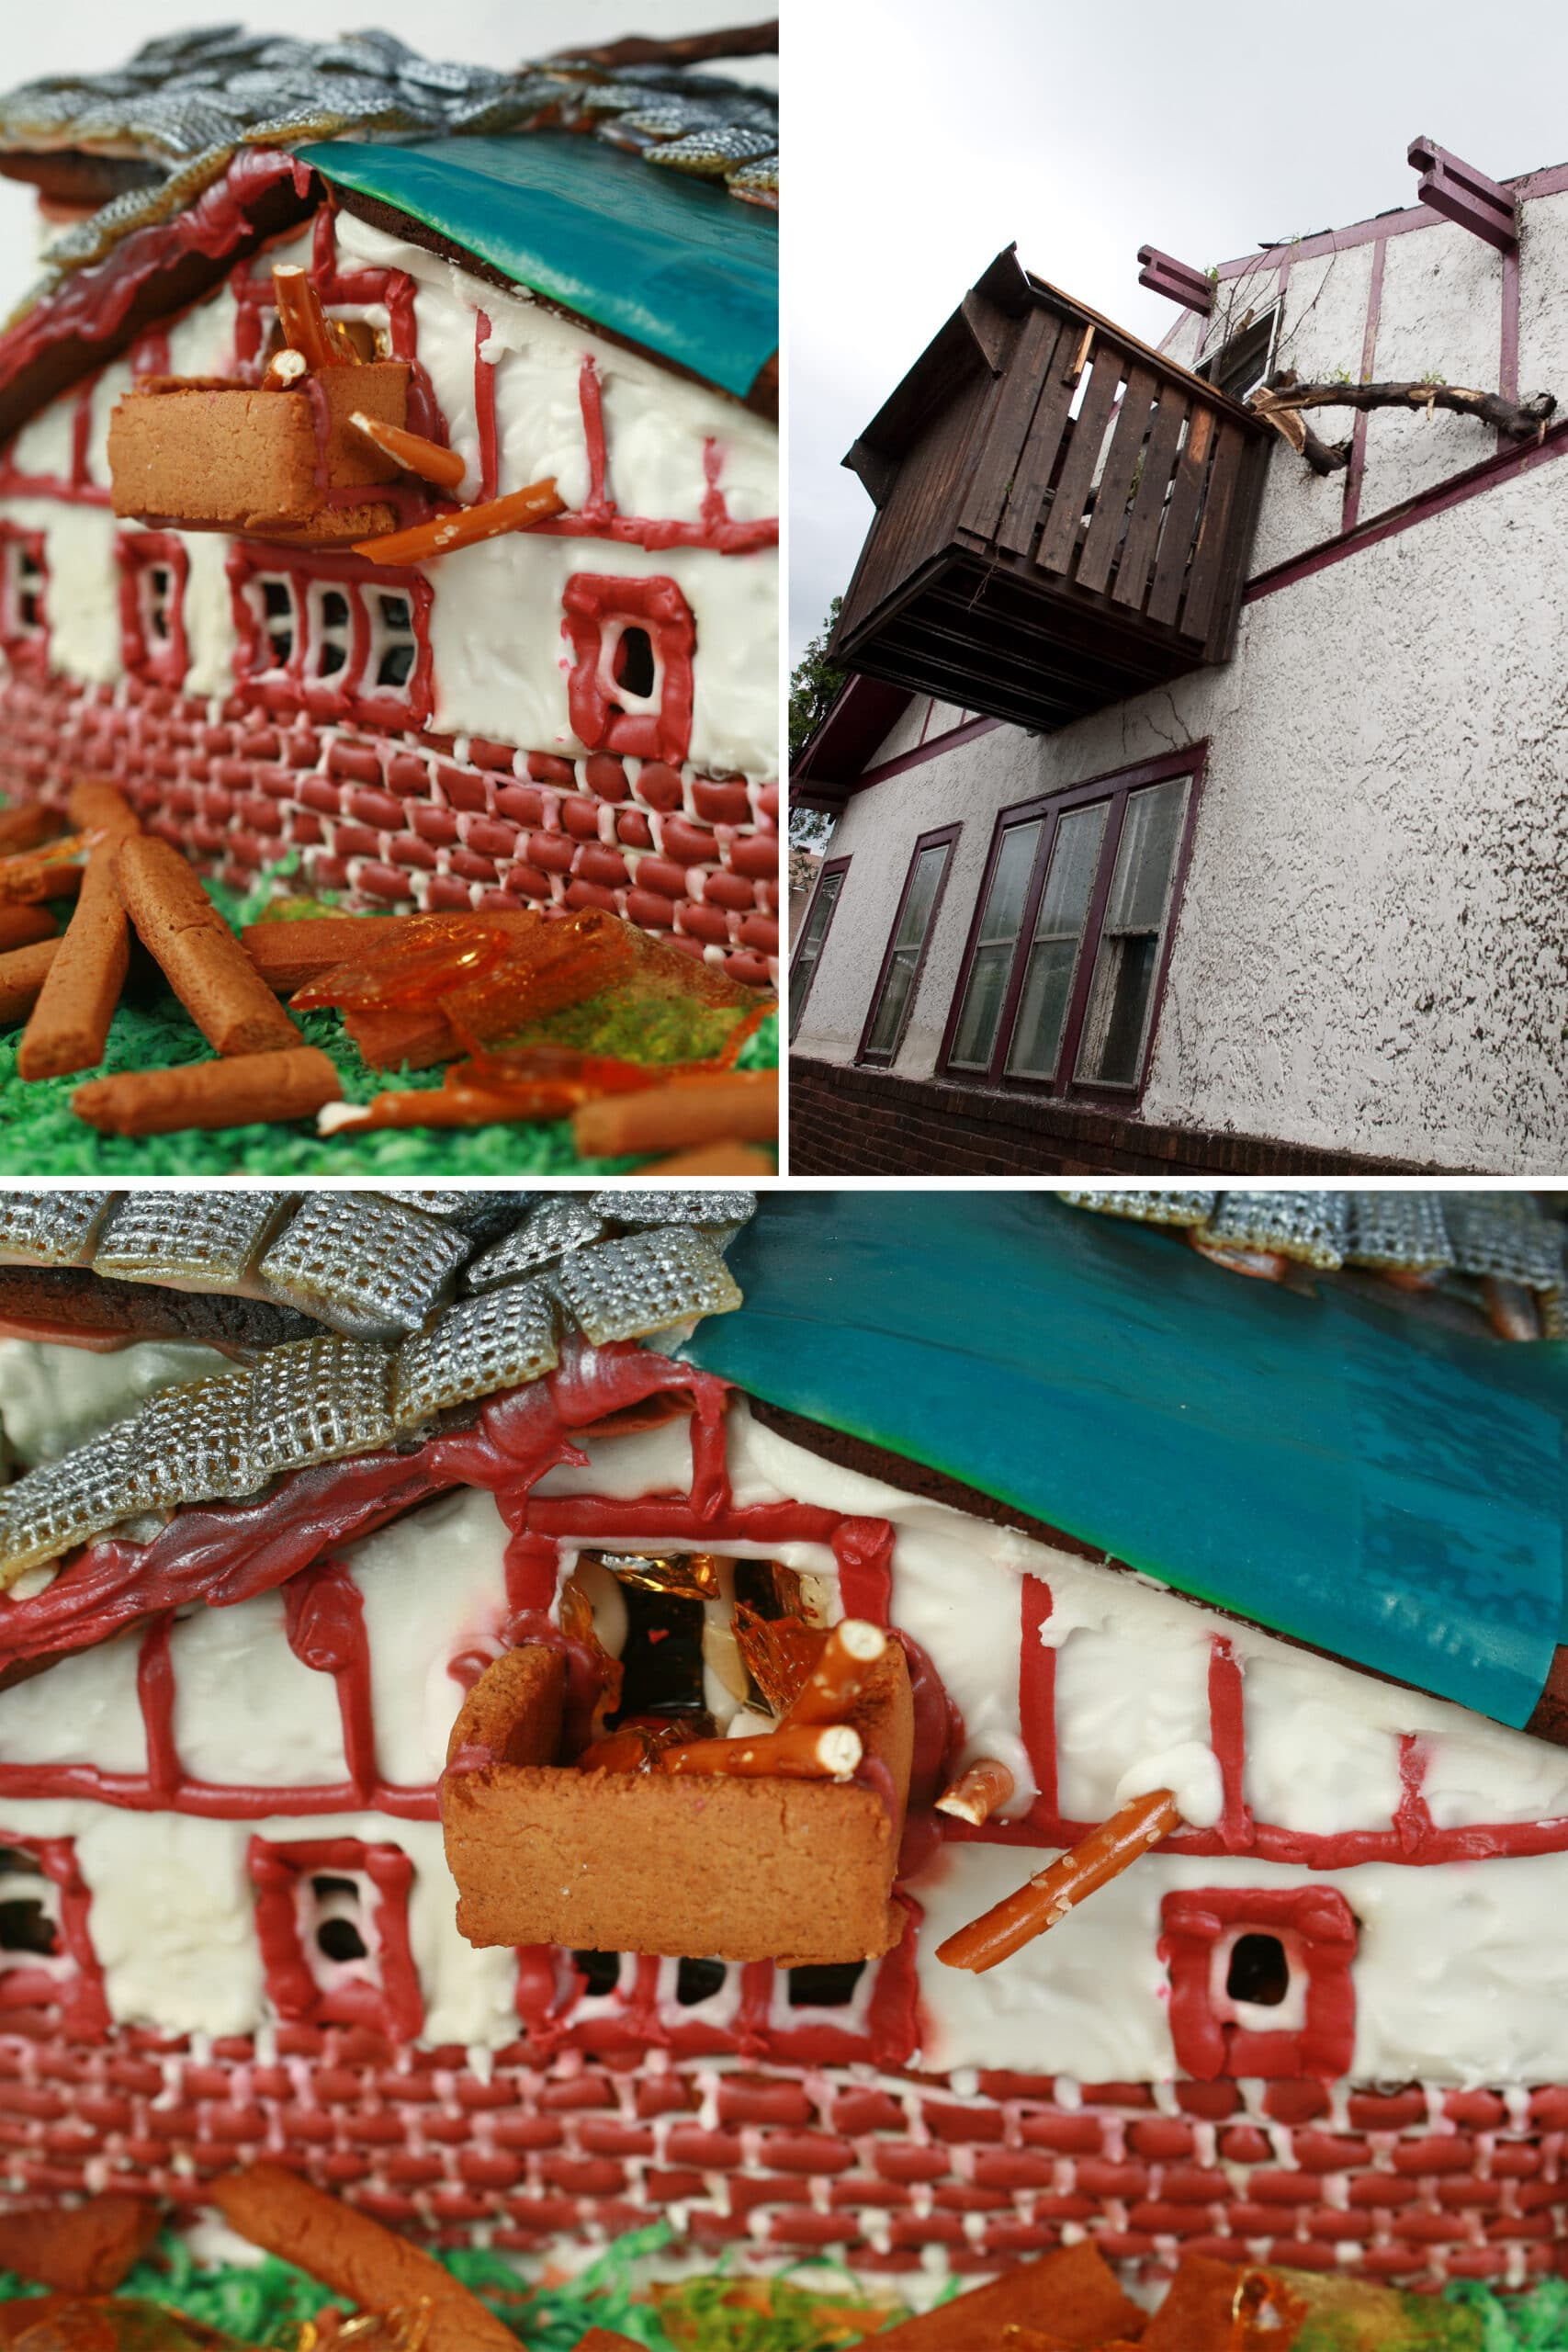 A compilation image showing the side of the gingerbread house, alongside a photo of our house on the day of the tornado.